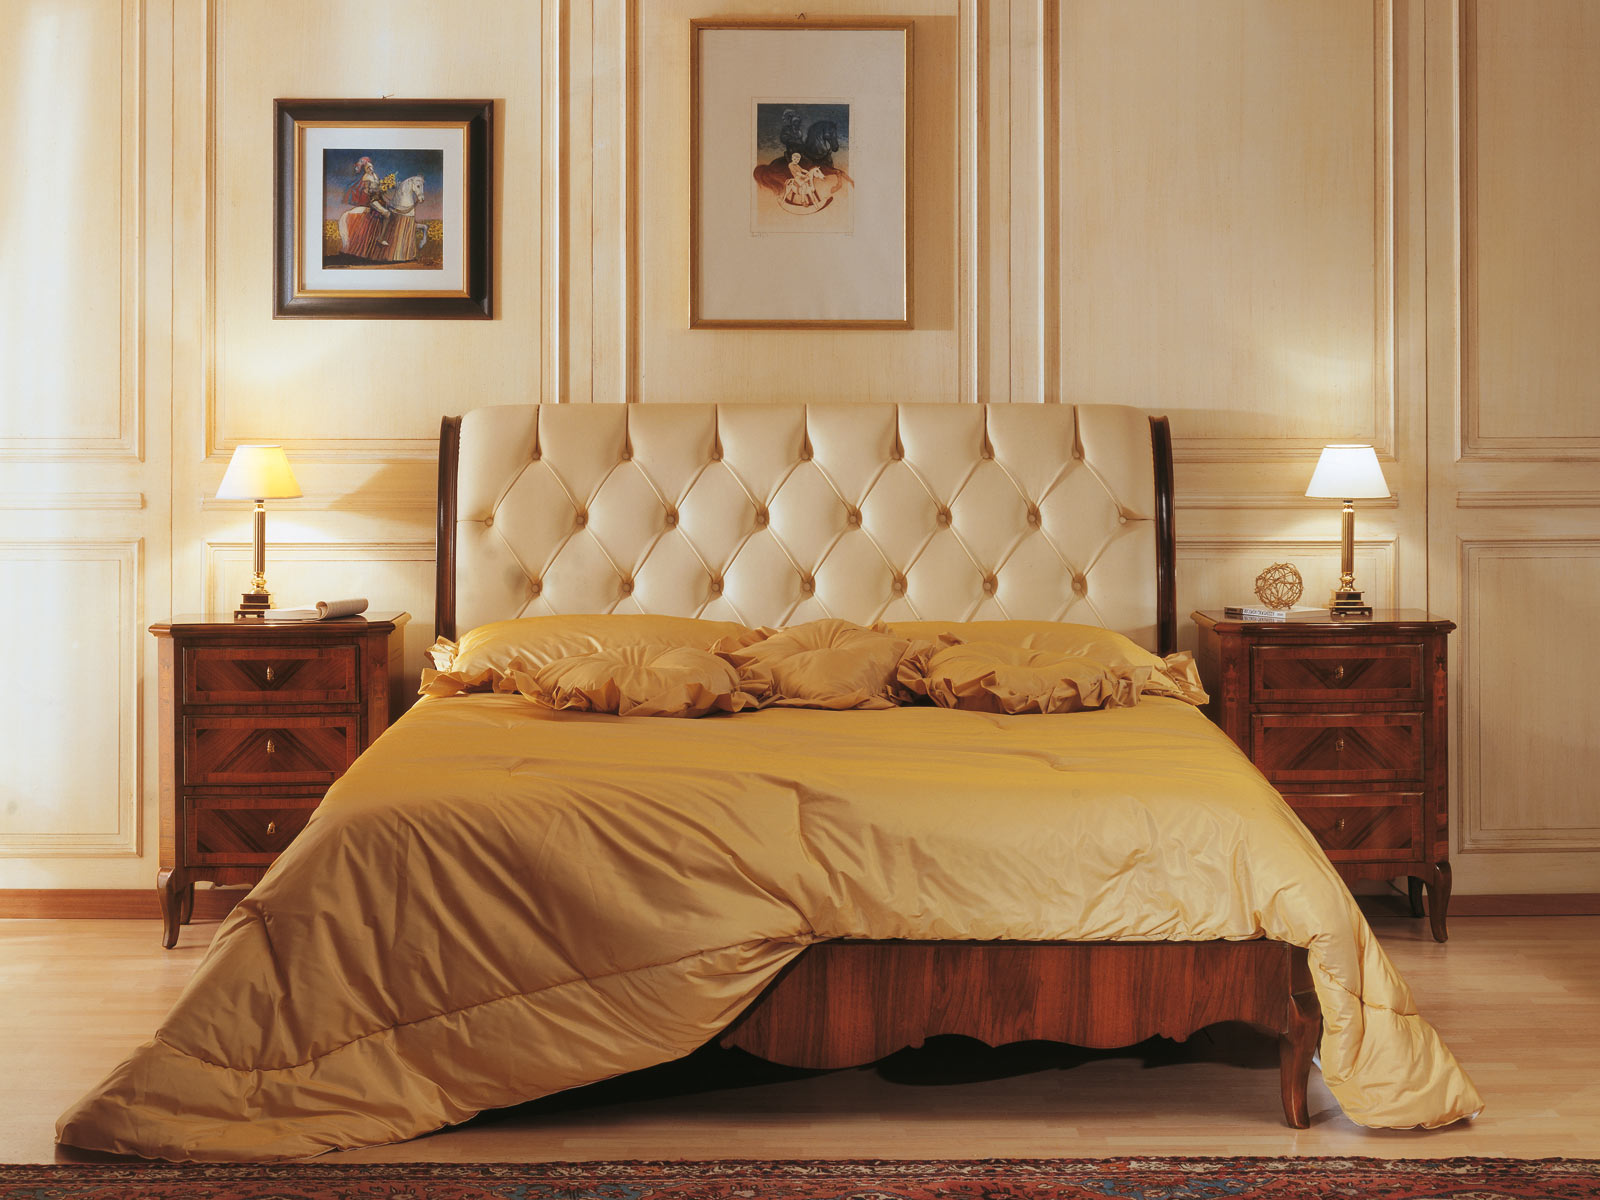 Classic Luxury 19th Century French Bedroom Bed In